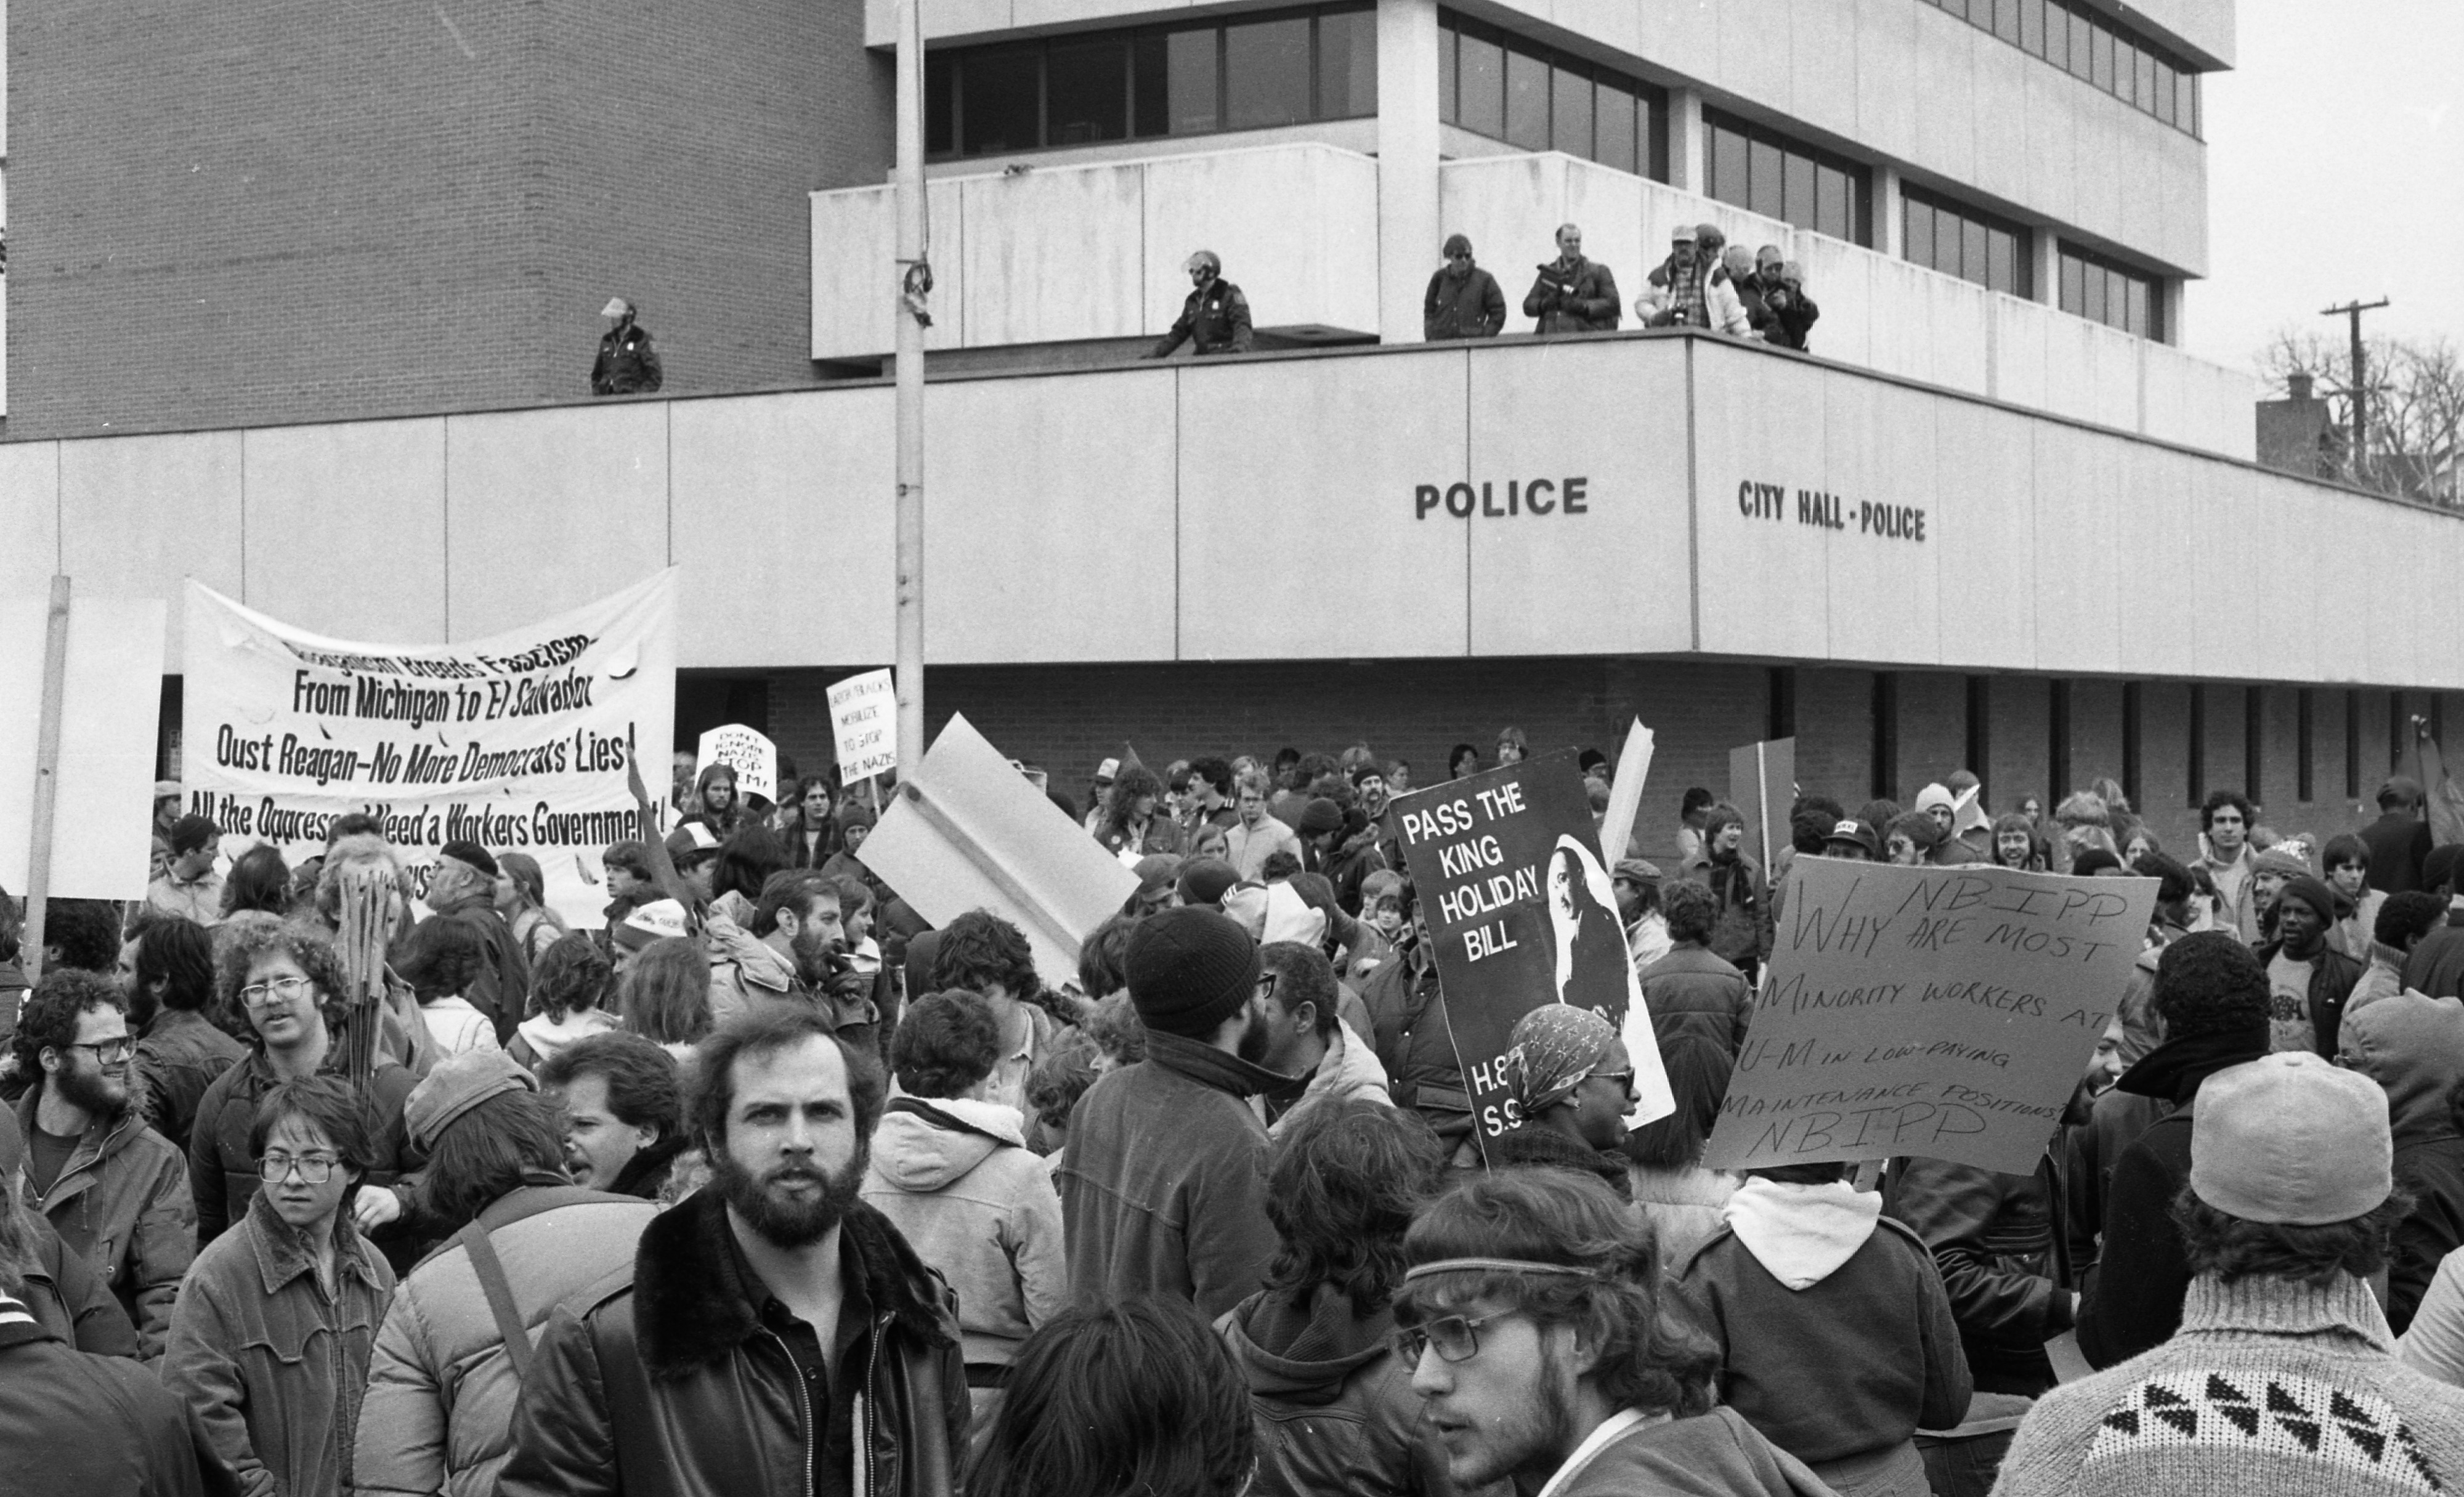 Ann Arbor Police Atop City Hall at Neo-Nazi March and Counter-Demonstrations, March 1982 image